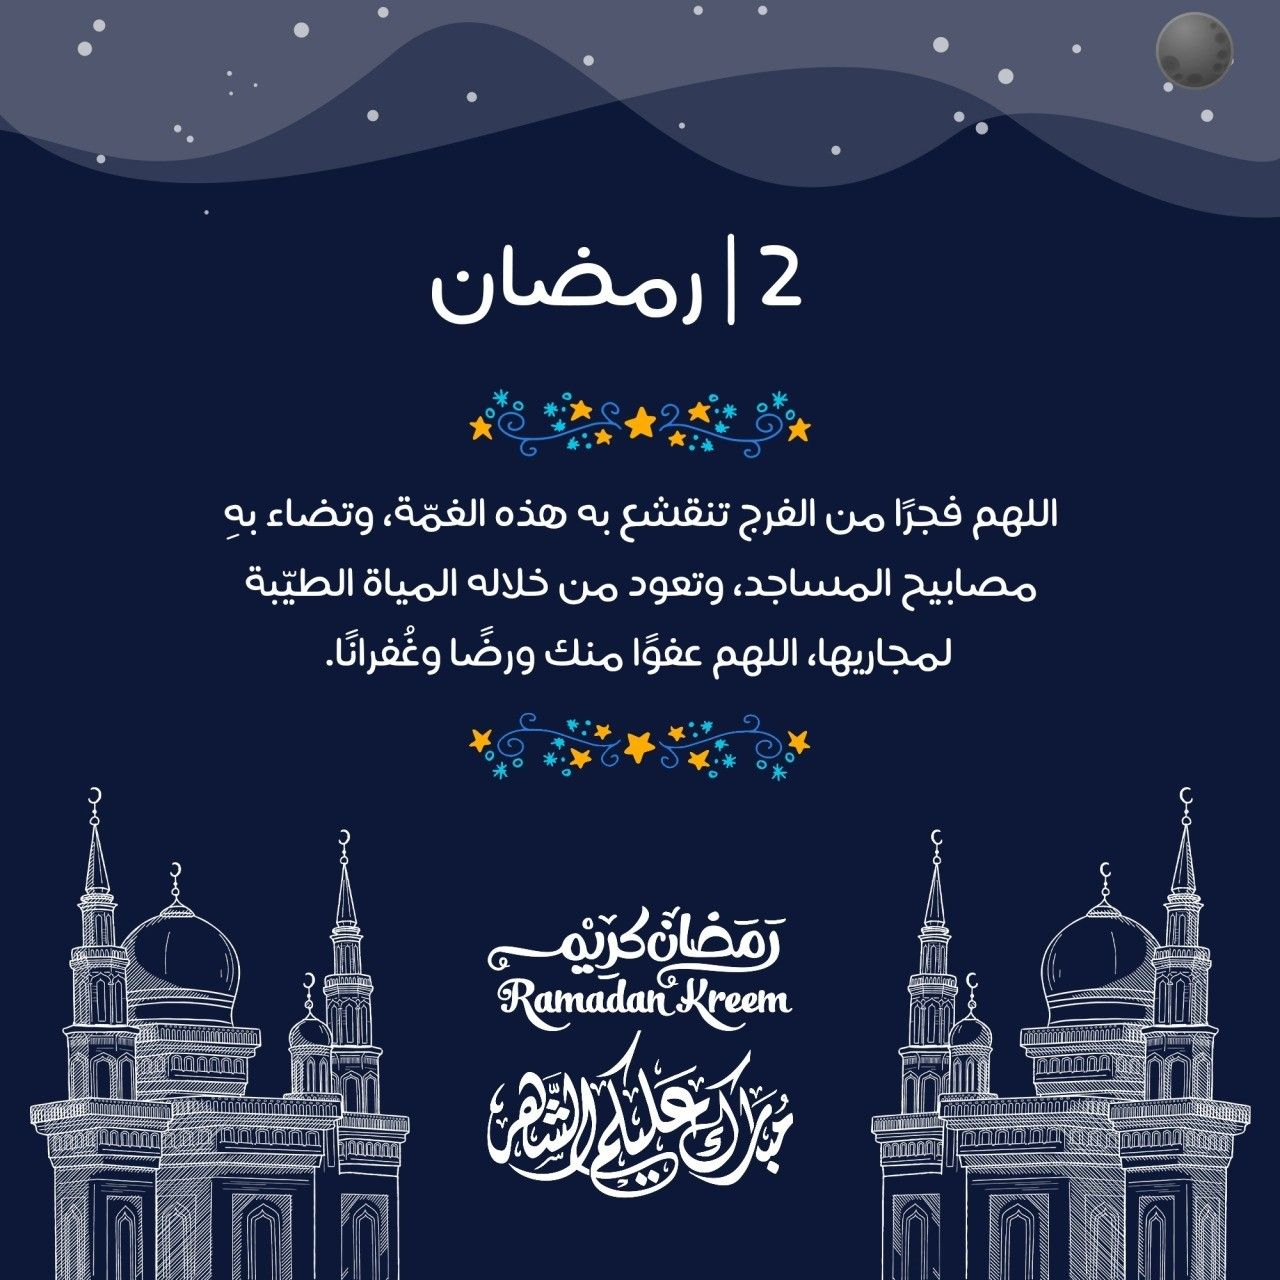 Pin By Haidy On كوفيد 19 Ramadan Poster Movie Posters